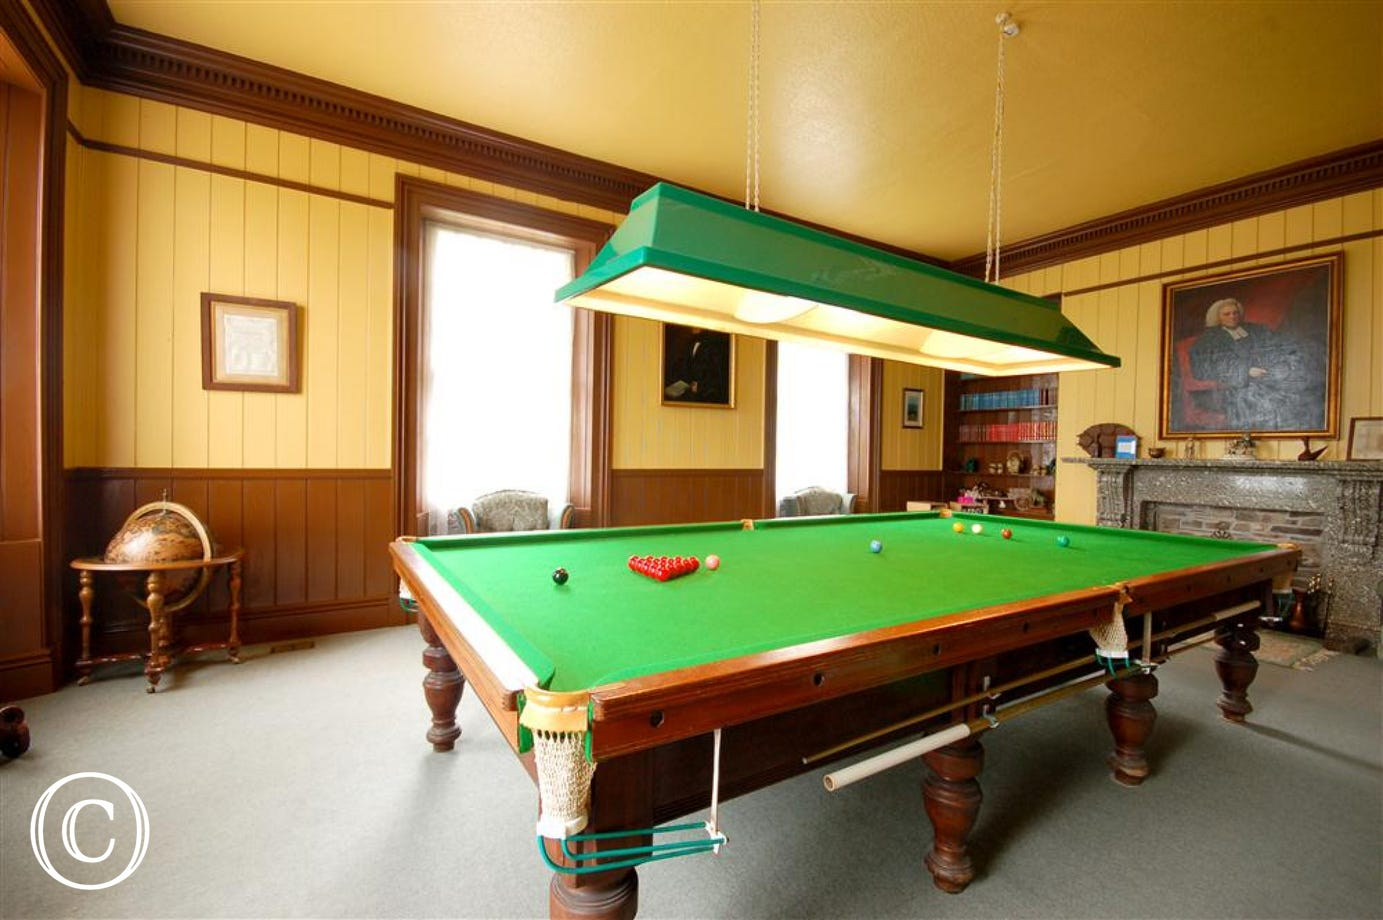 Games room for all the family to enjoy